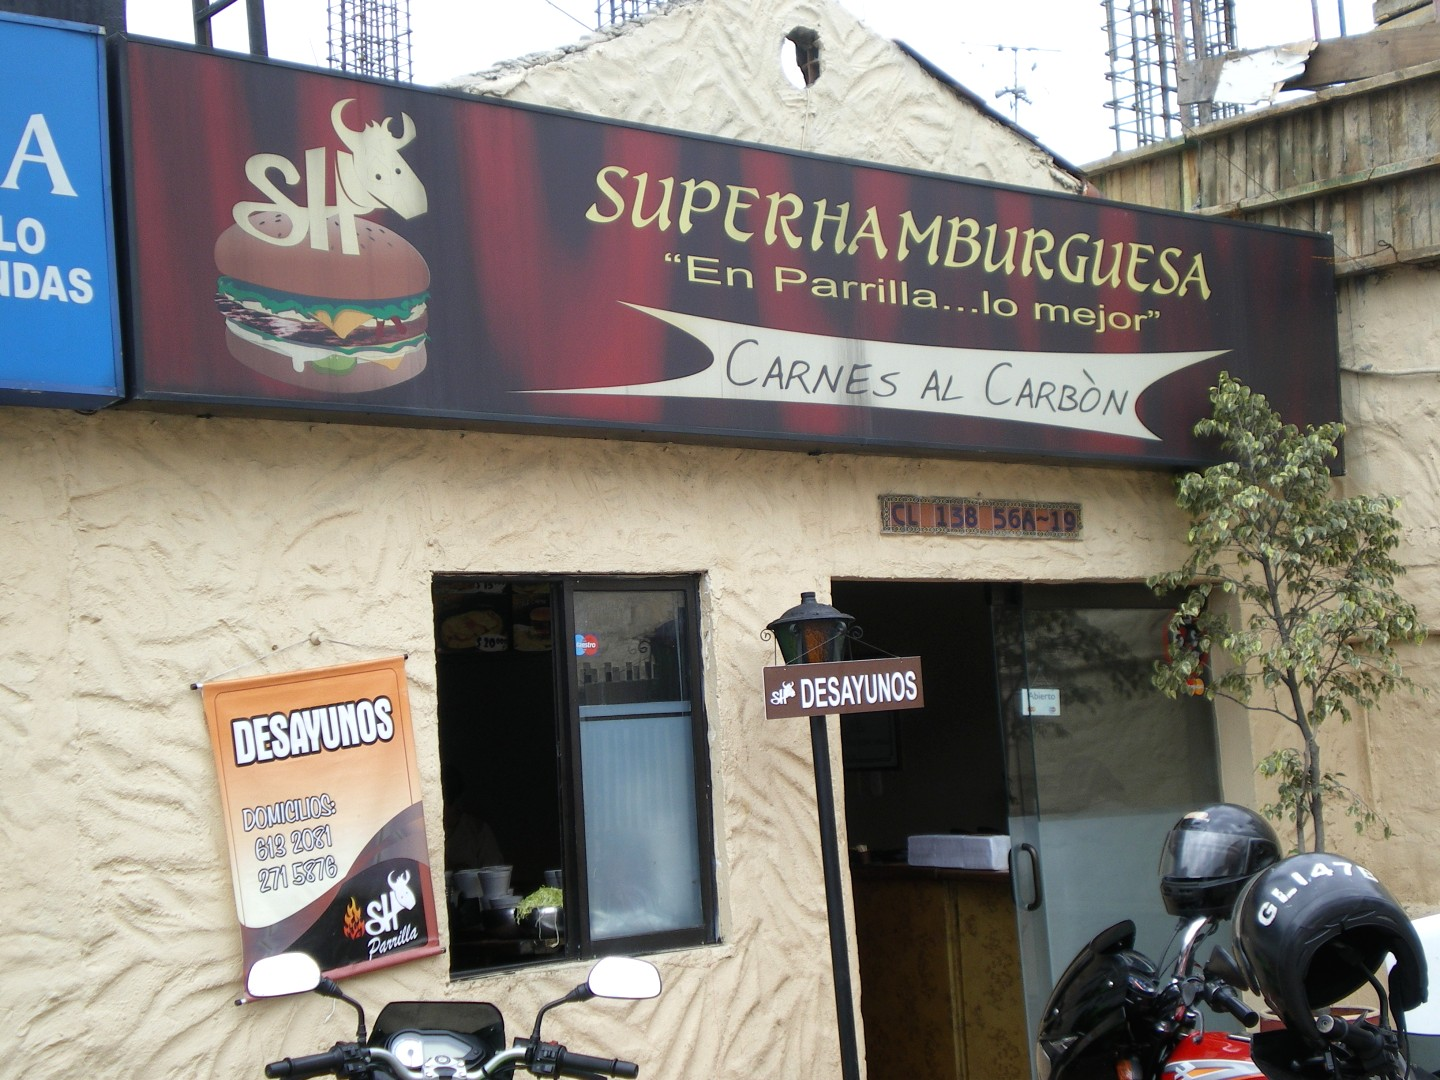 Superhamburguesa